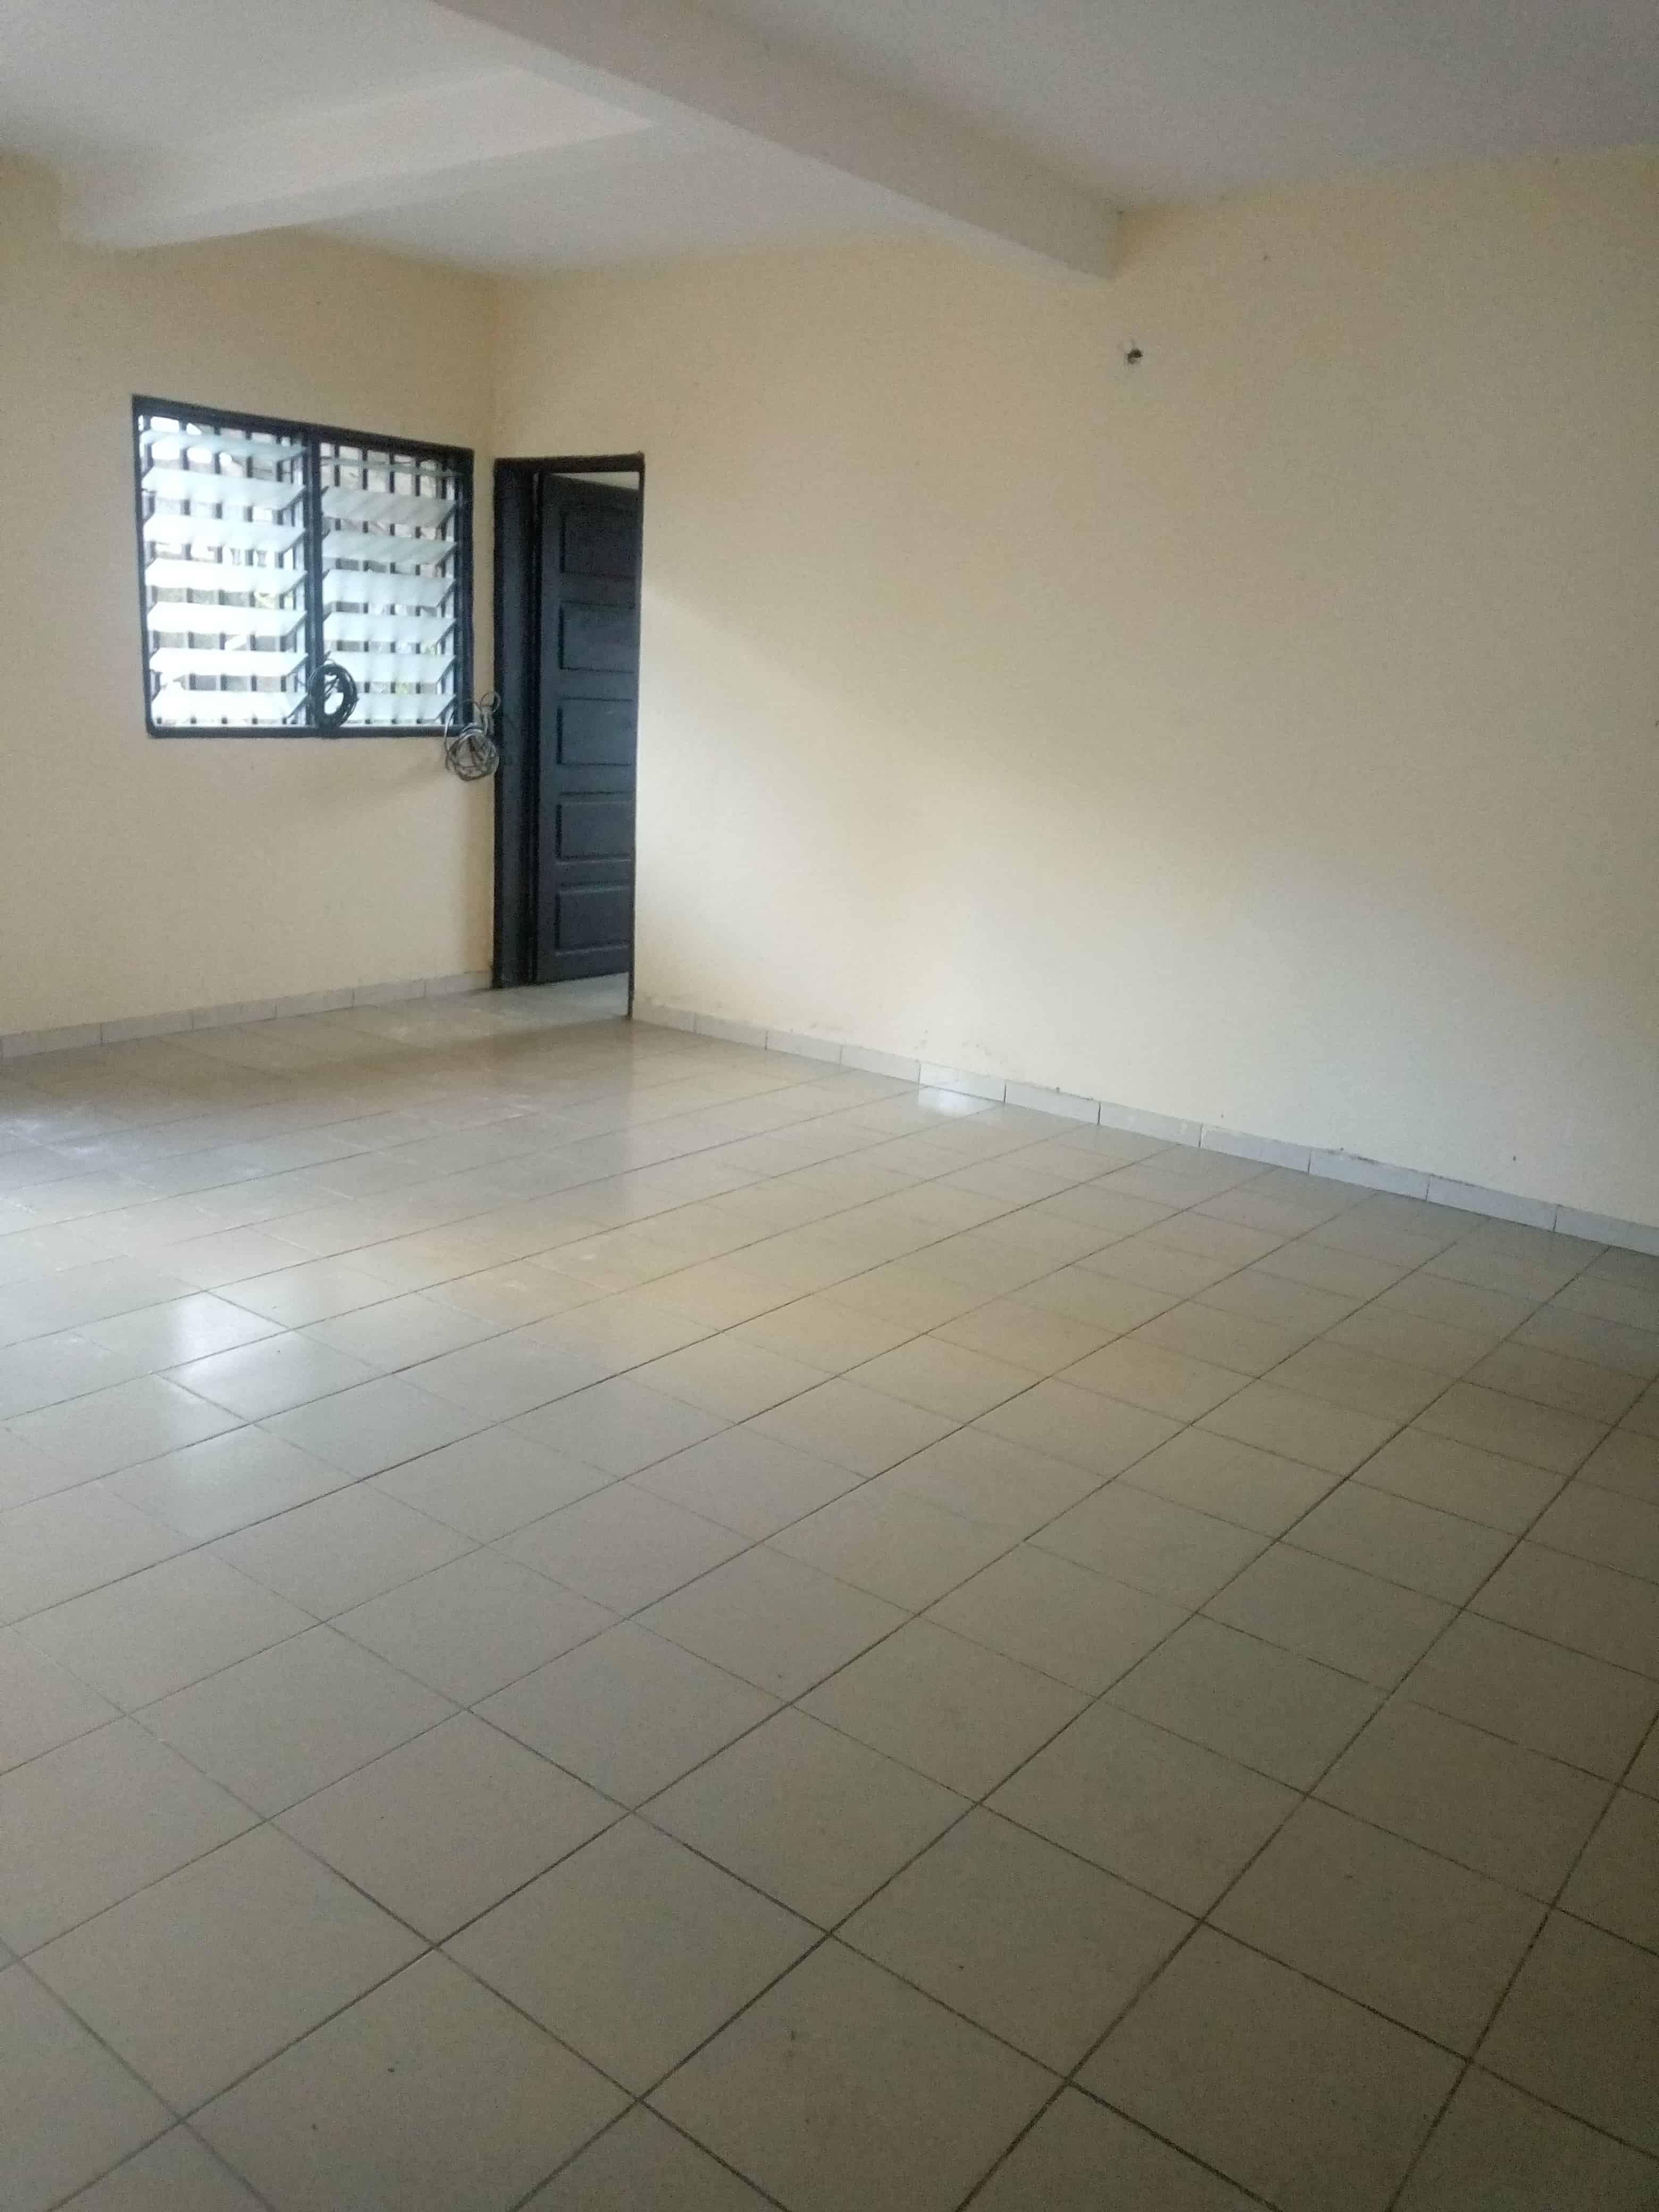 Apartment to rent - Douala, Makepe, Rond pauleng - 1 living room(s), 2 bedroom(s), 1 bathroom(s) - 75 000 FCFA / month